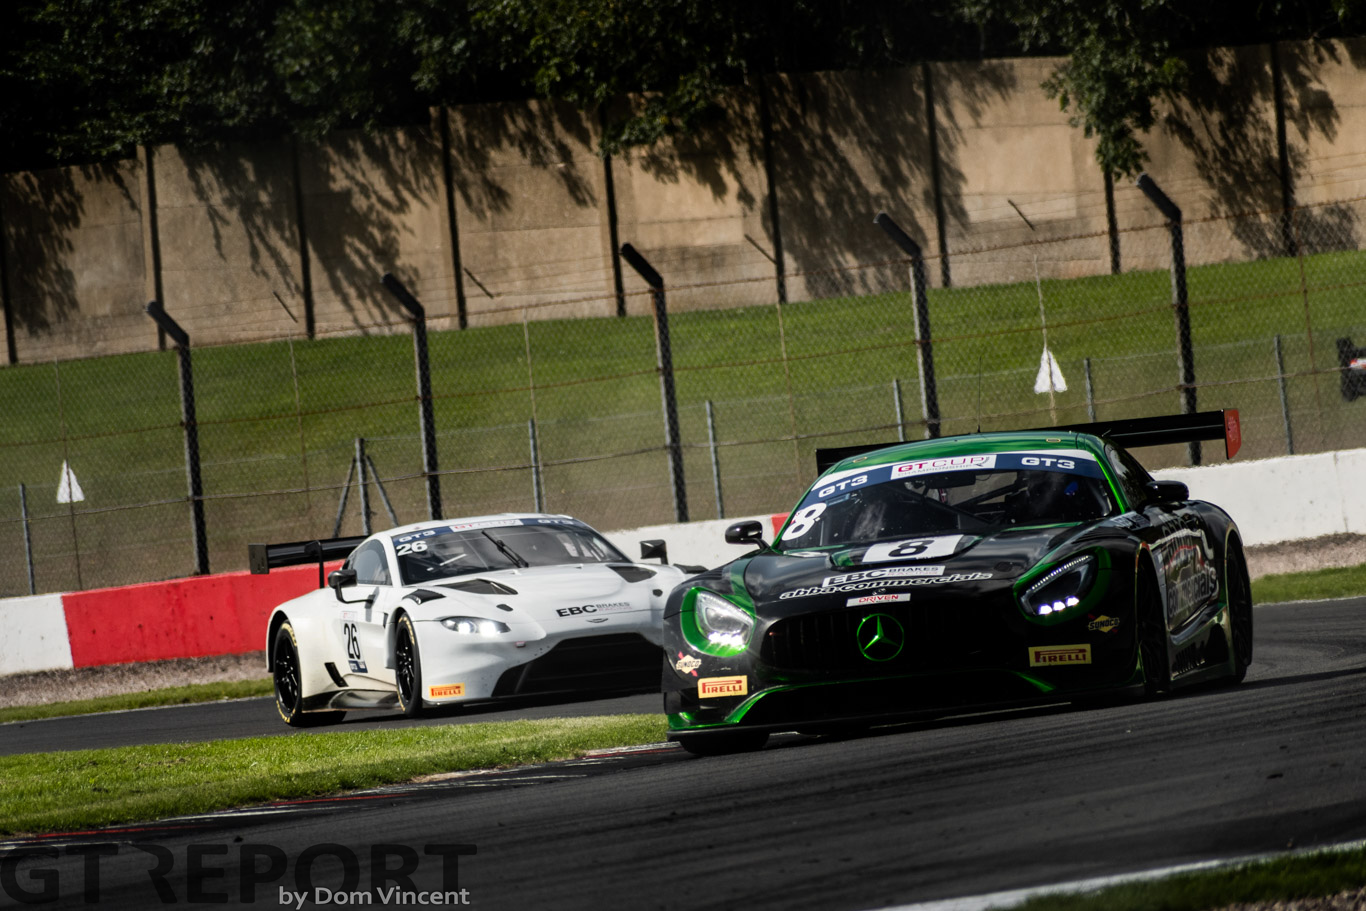 GT Cup Donington race report: Neary duo win three from four